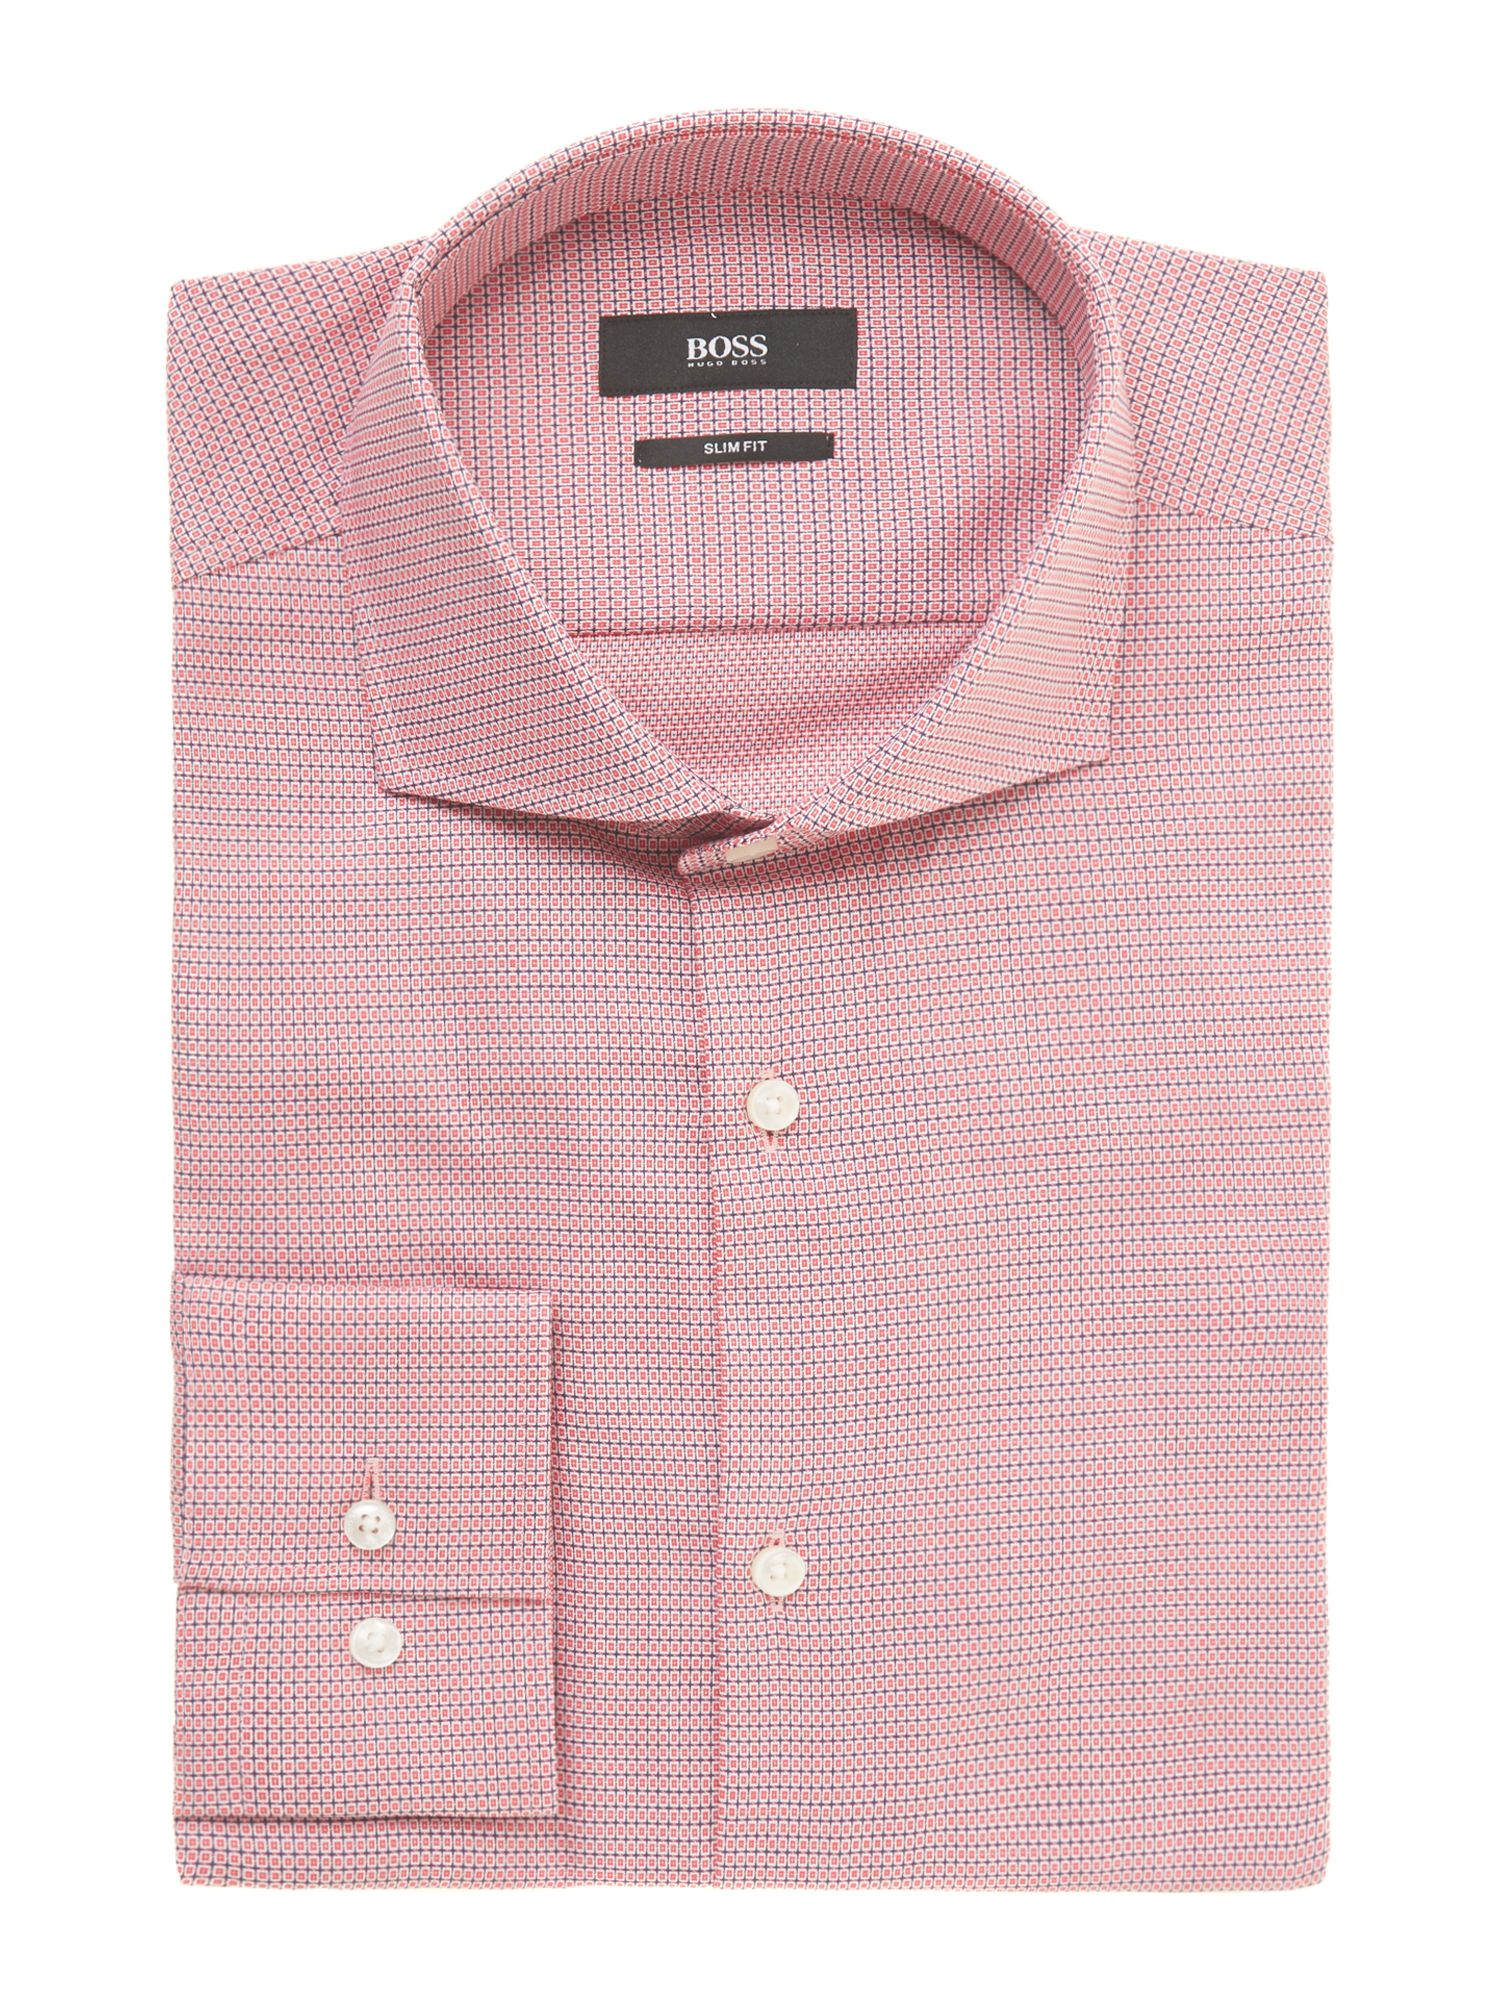 Jason slim fit dobby check shirt